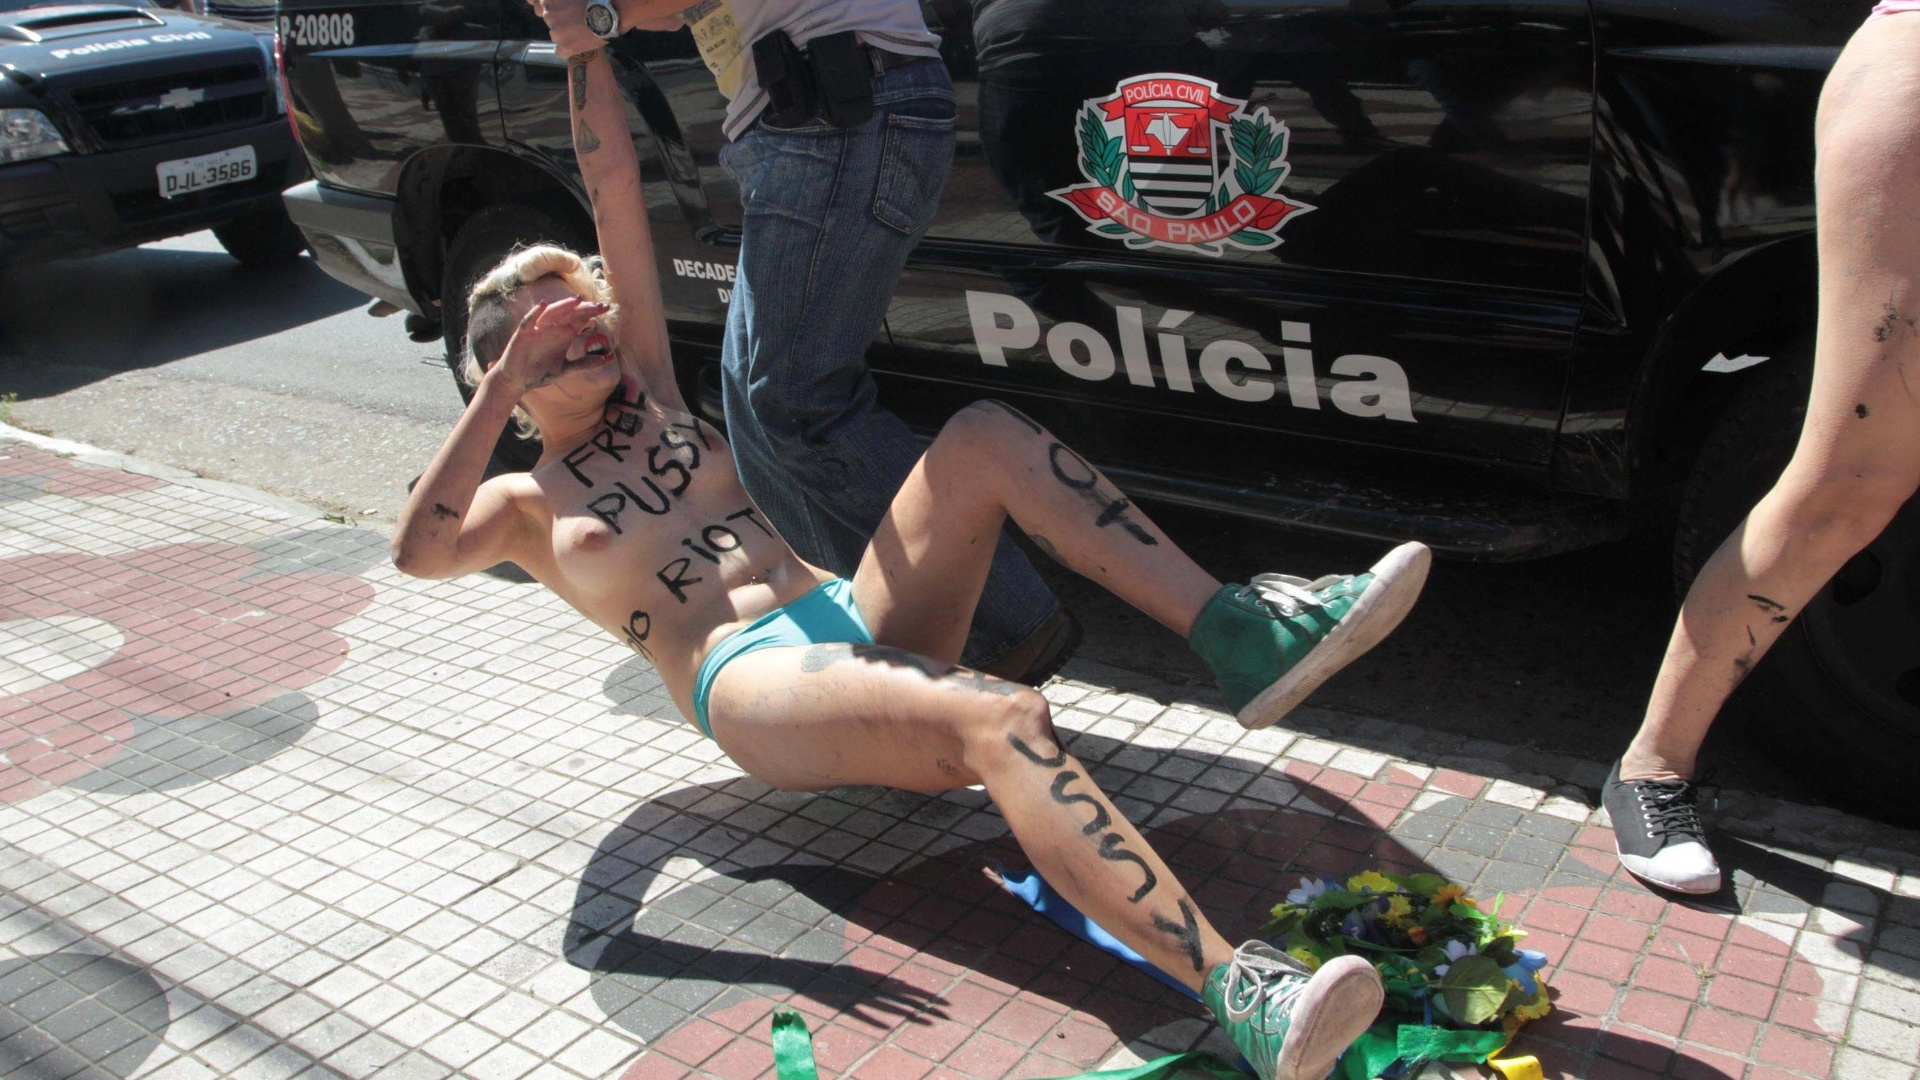 15.ago.2012 - Ativista do grupo Femen  arrastada por policial ao ser detida durante um protesto em prol da liberdade de trs integrantes da banda russa Pussy Riot, em frente ao consulado da Rssia, em So Paulo. As trs russas foram detidas devido a um protesto realizado em uma igreja, quando cantaram uma msica intitulada 